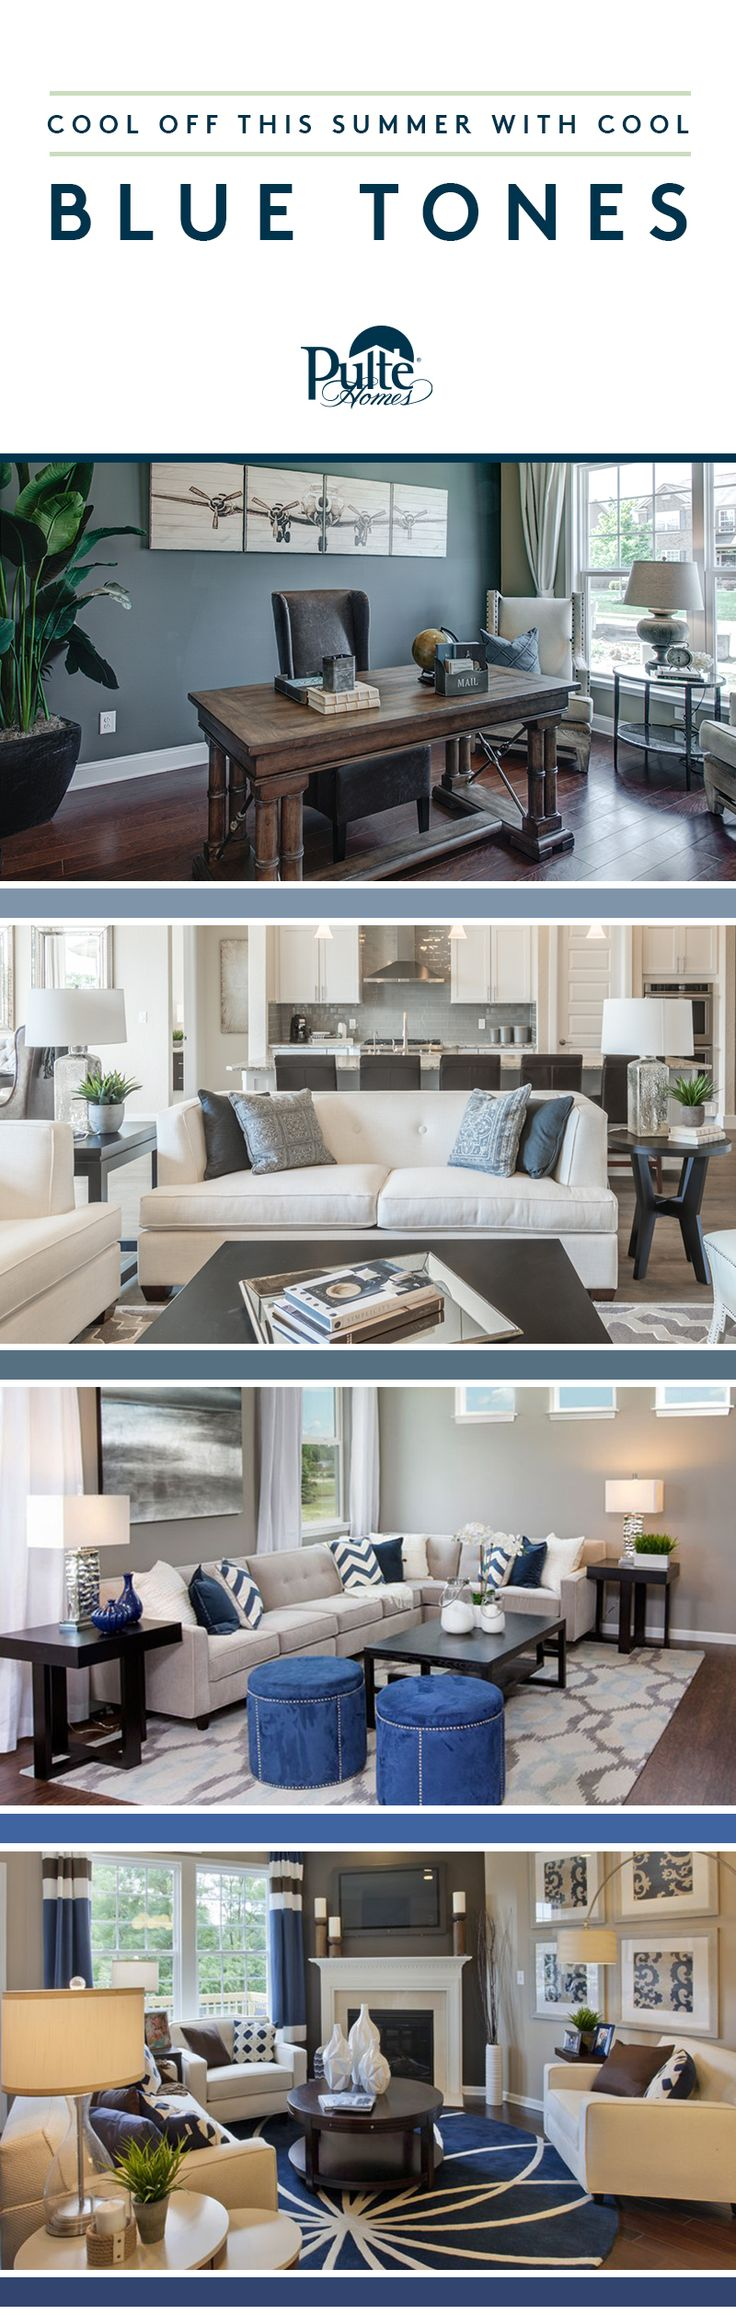 25 Best Ideas About Pulte Homes On Pinterest Master Closet Layout Walk In Wardrobe Inspiration And Diy Walk In Closet